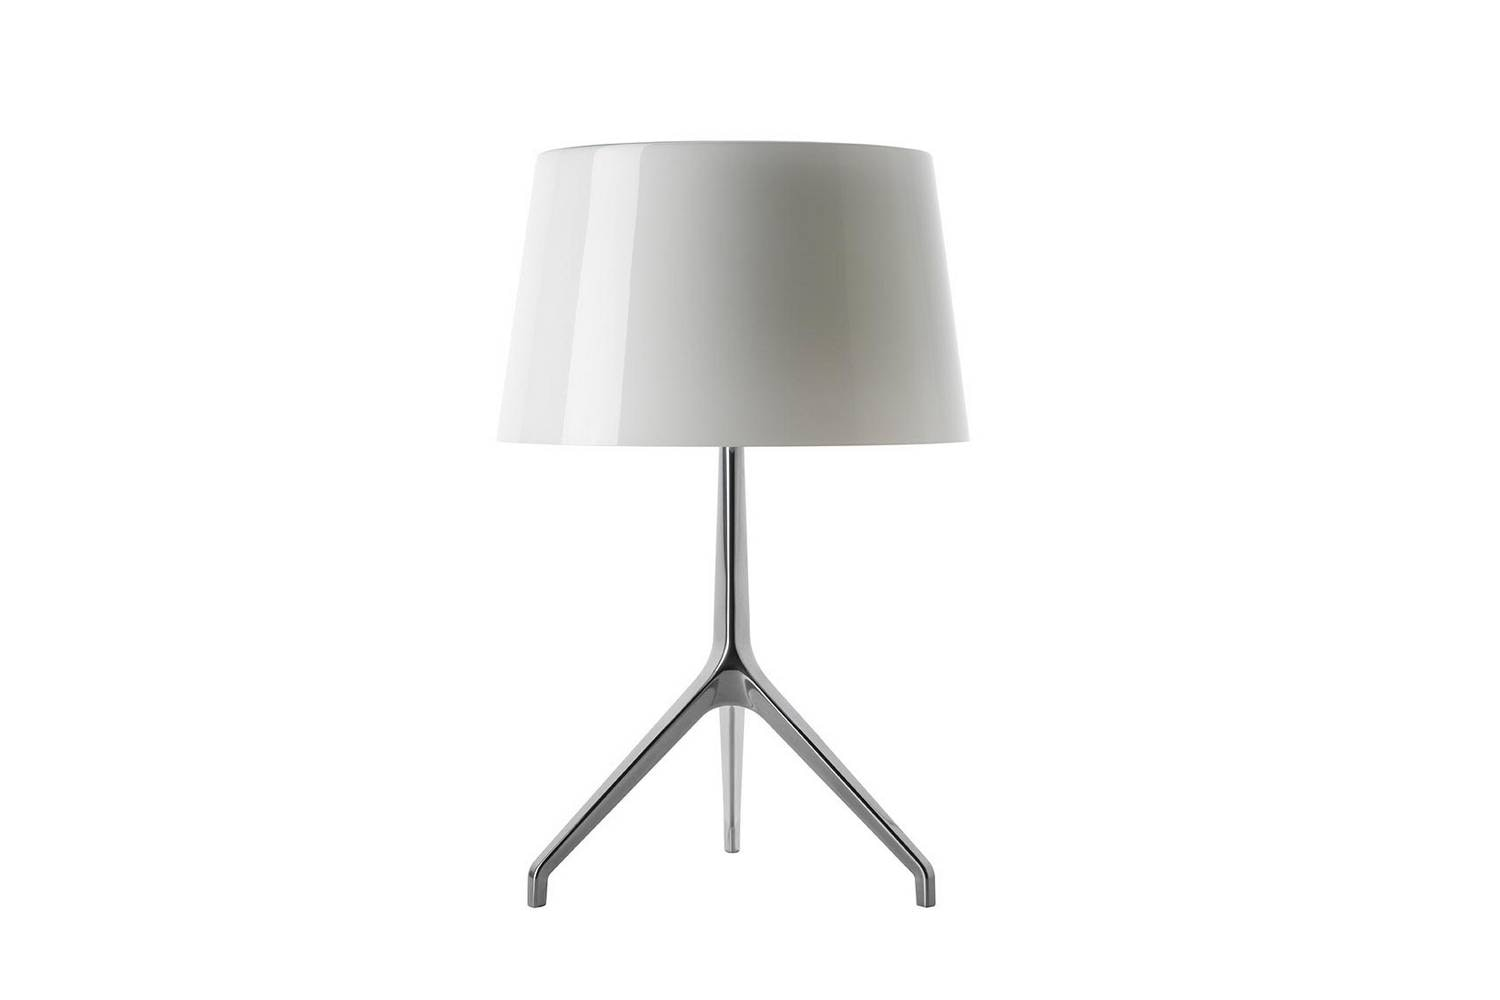 space furniture lighting.  lighting lumiere xxl table lamp by rodolfo dordoni for foscarini  space furniture and lighting